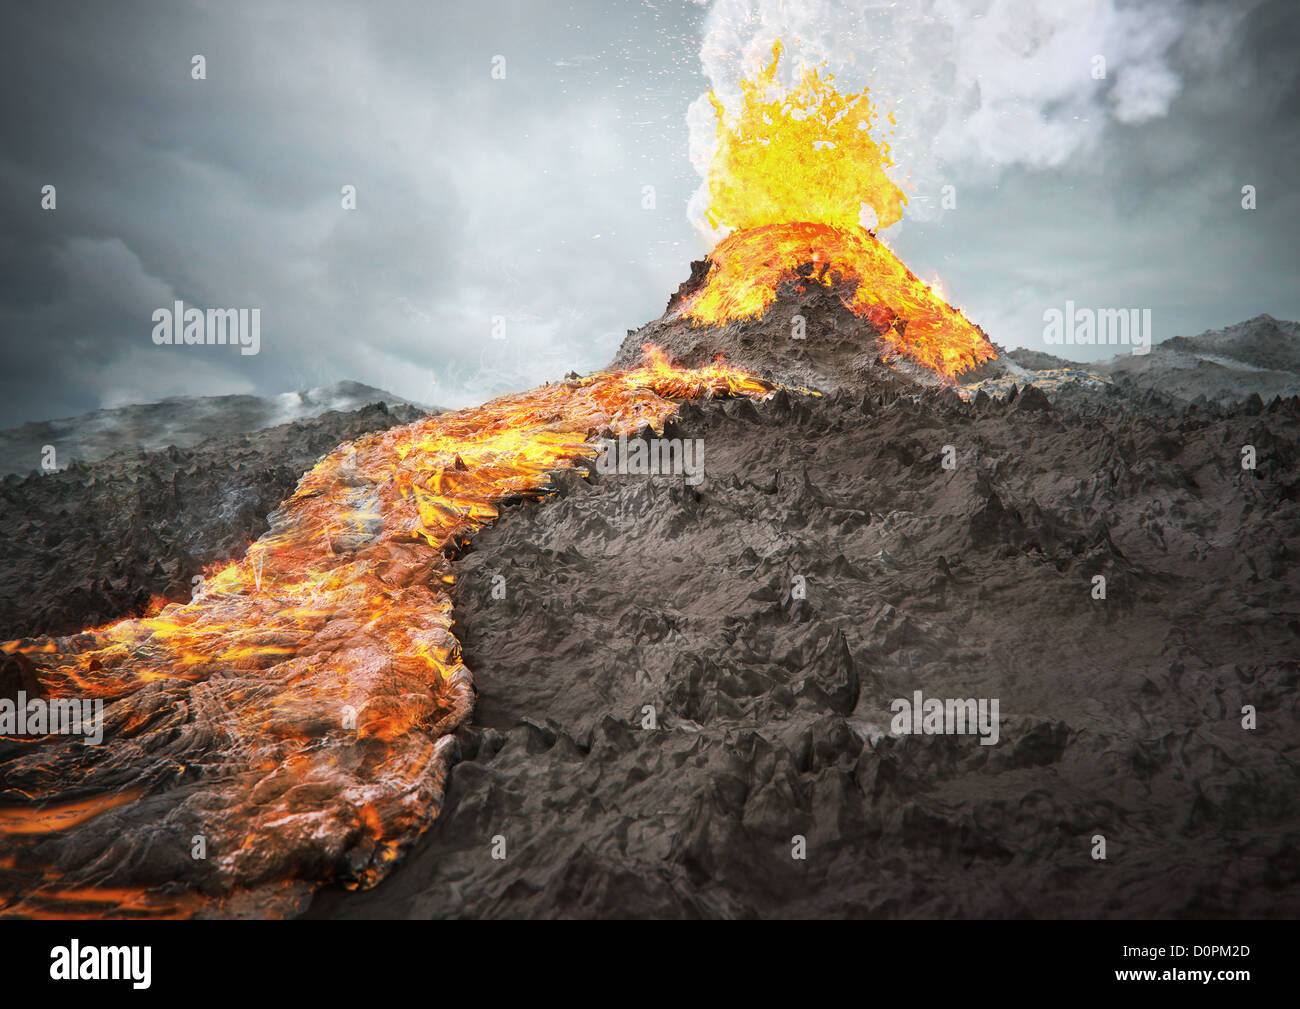 Volcano, eruption, lava, red hot, smoke, CGI, - Stock Image